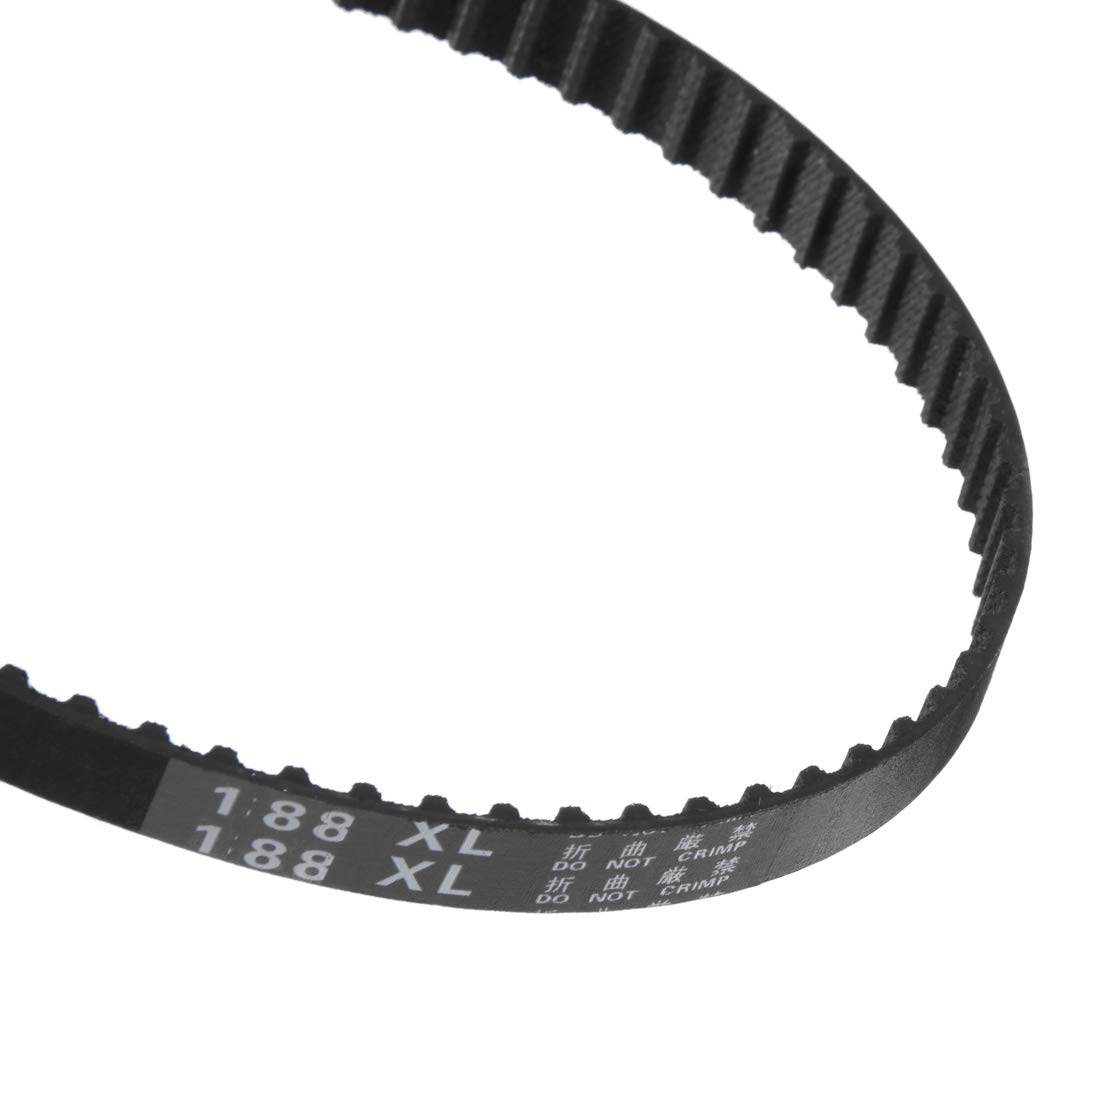 uxcell 188XL Rubber Timing Belt Synchronous Closed Loop Belt Timing Pulley Tools 10mm Width 2pcs